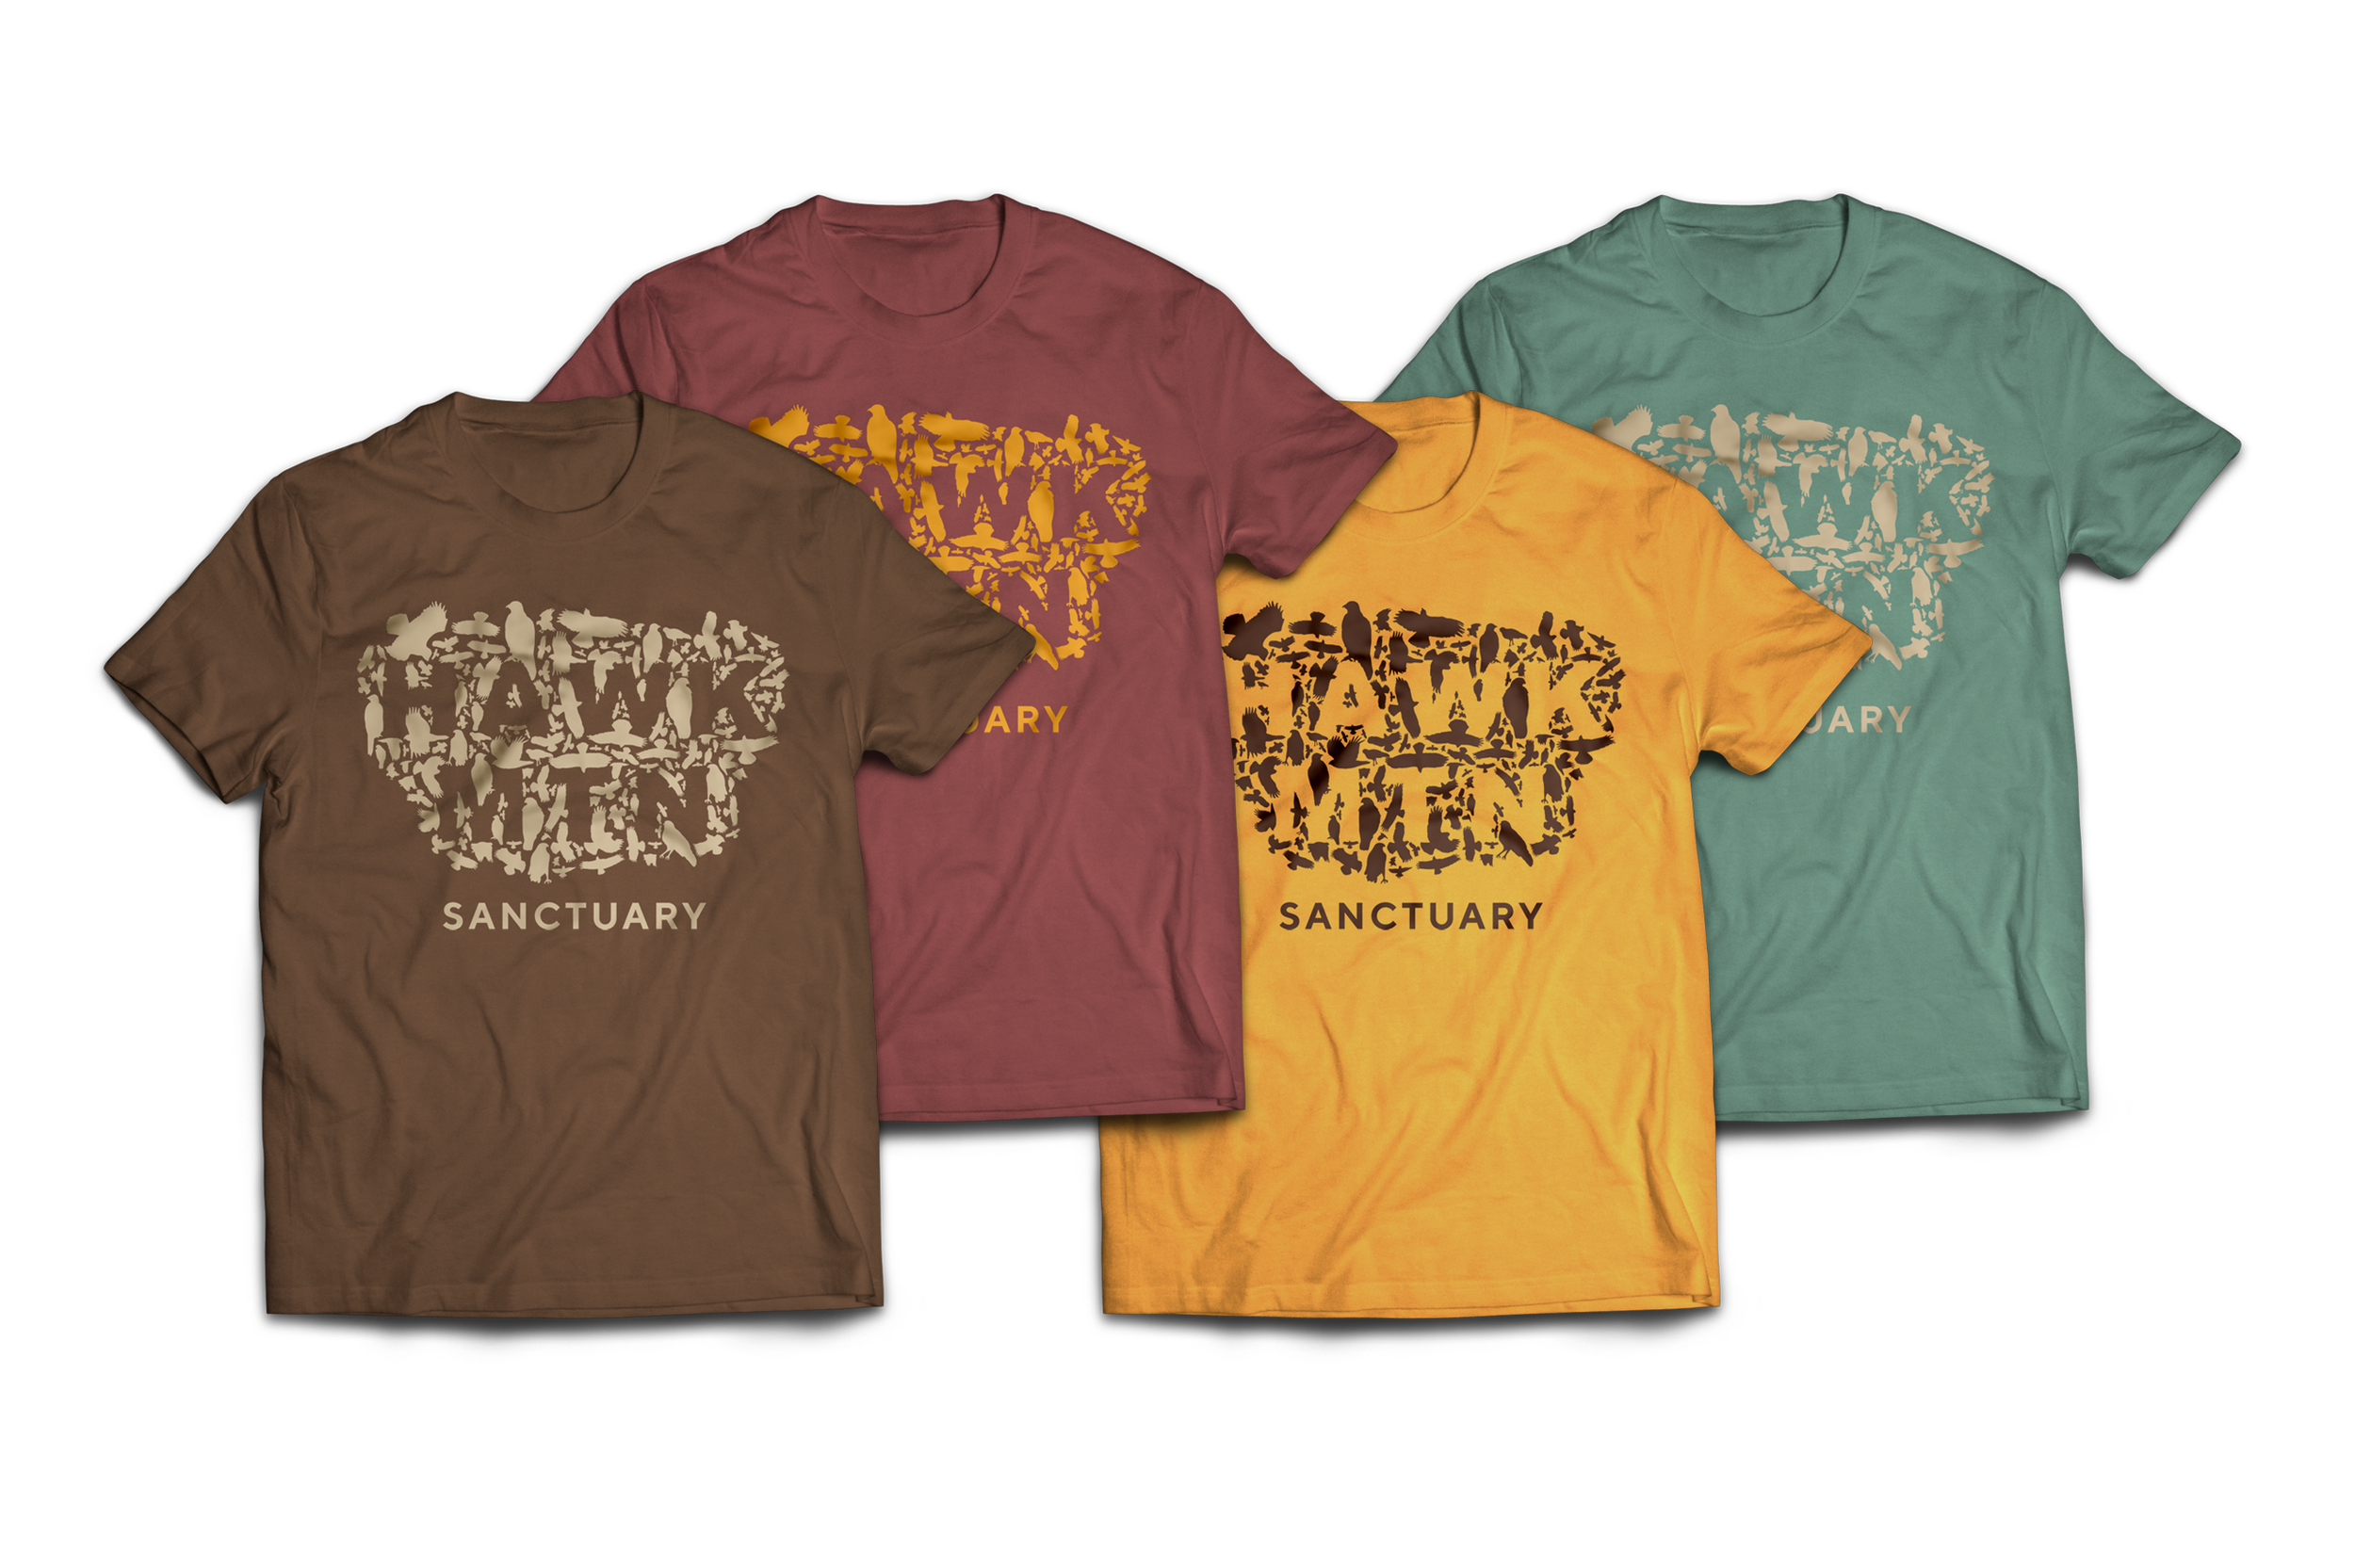 T-shirt color combinations with new mark